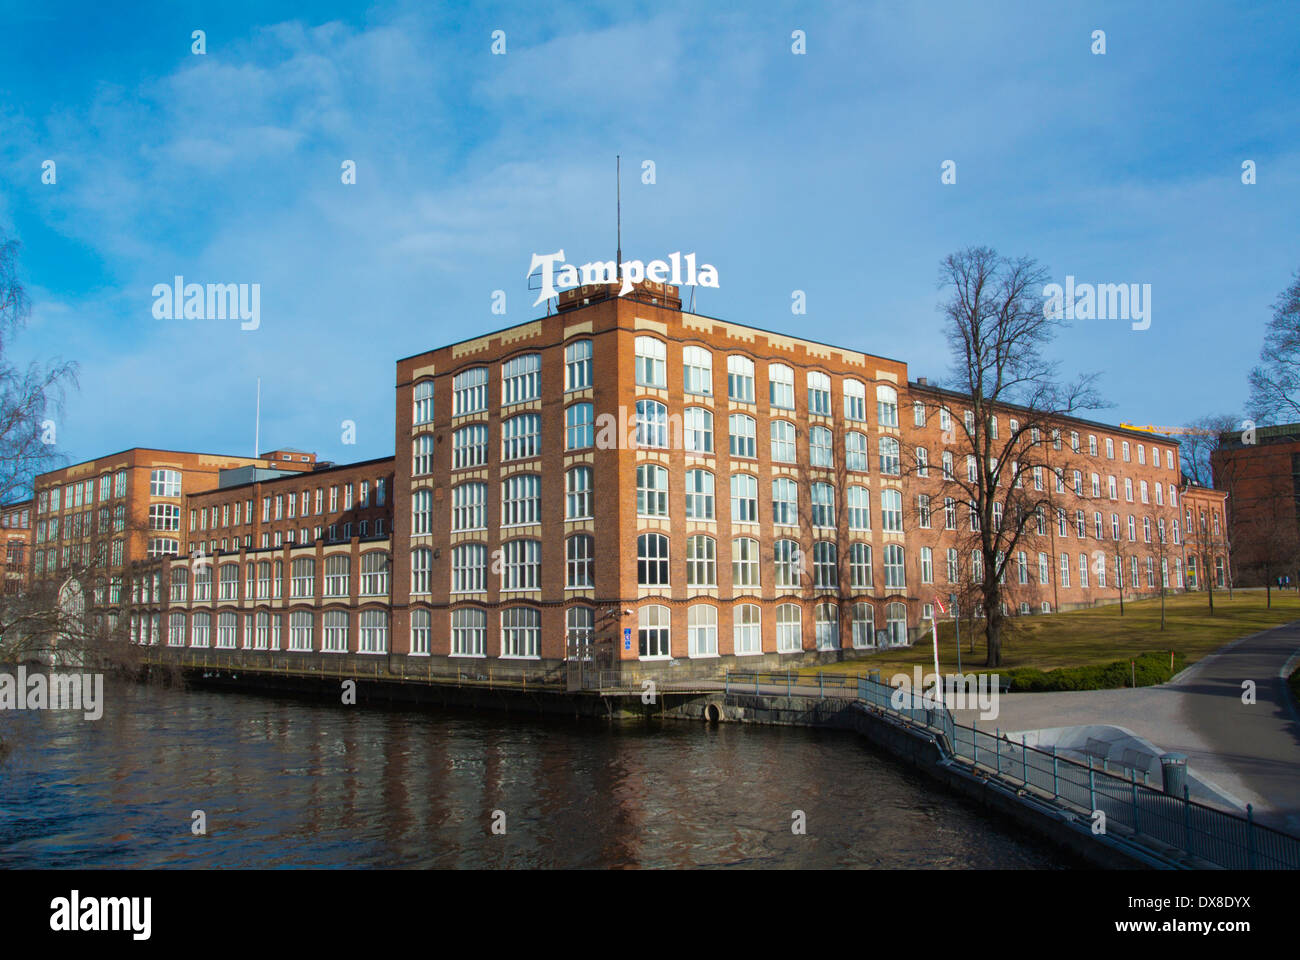 Tampella, converted former industrial buildings by Tammerkoski river, central Tampere, central Finland, Europe - Stock Image